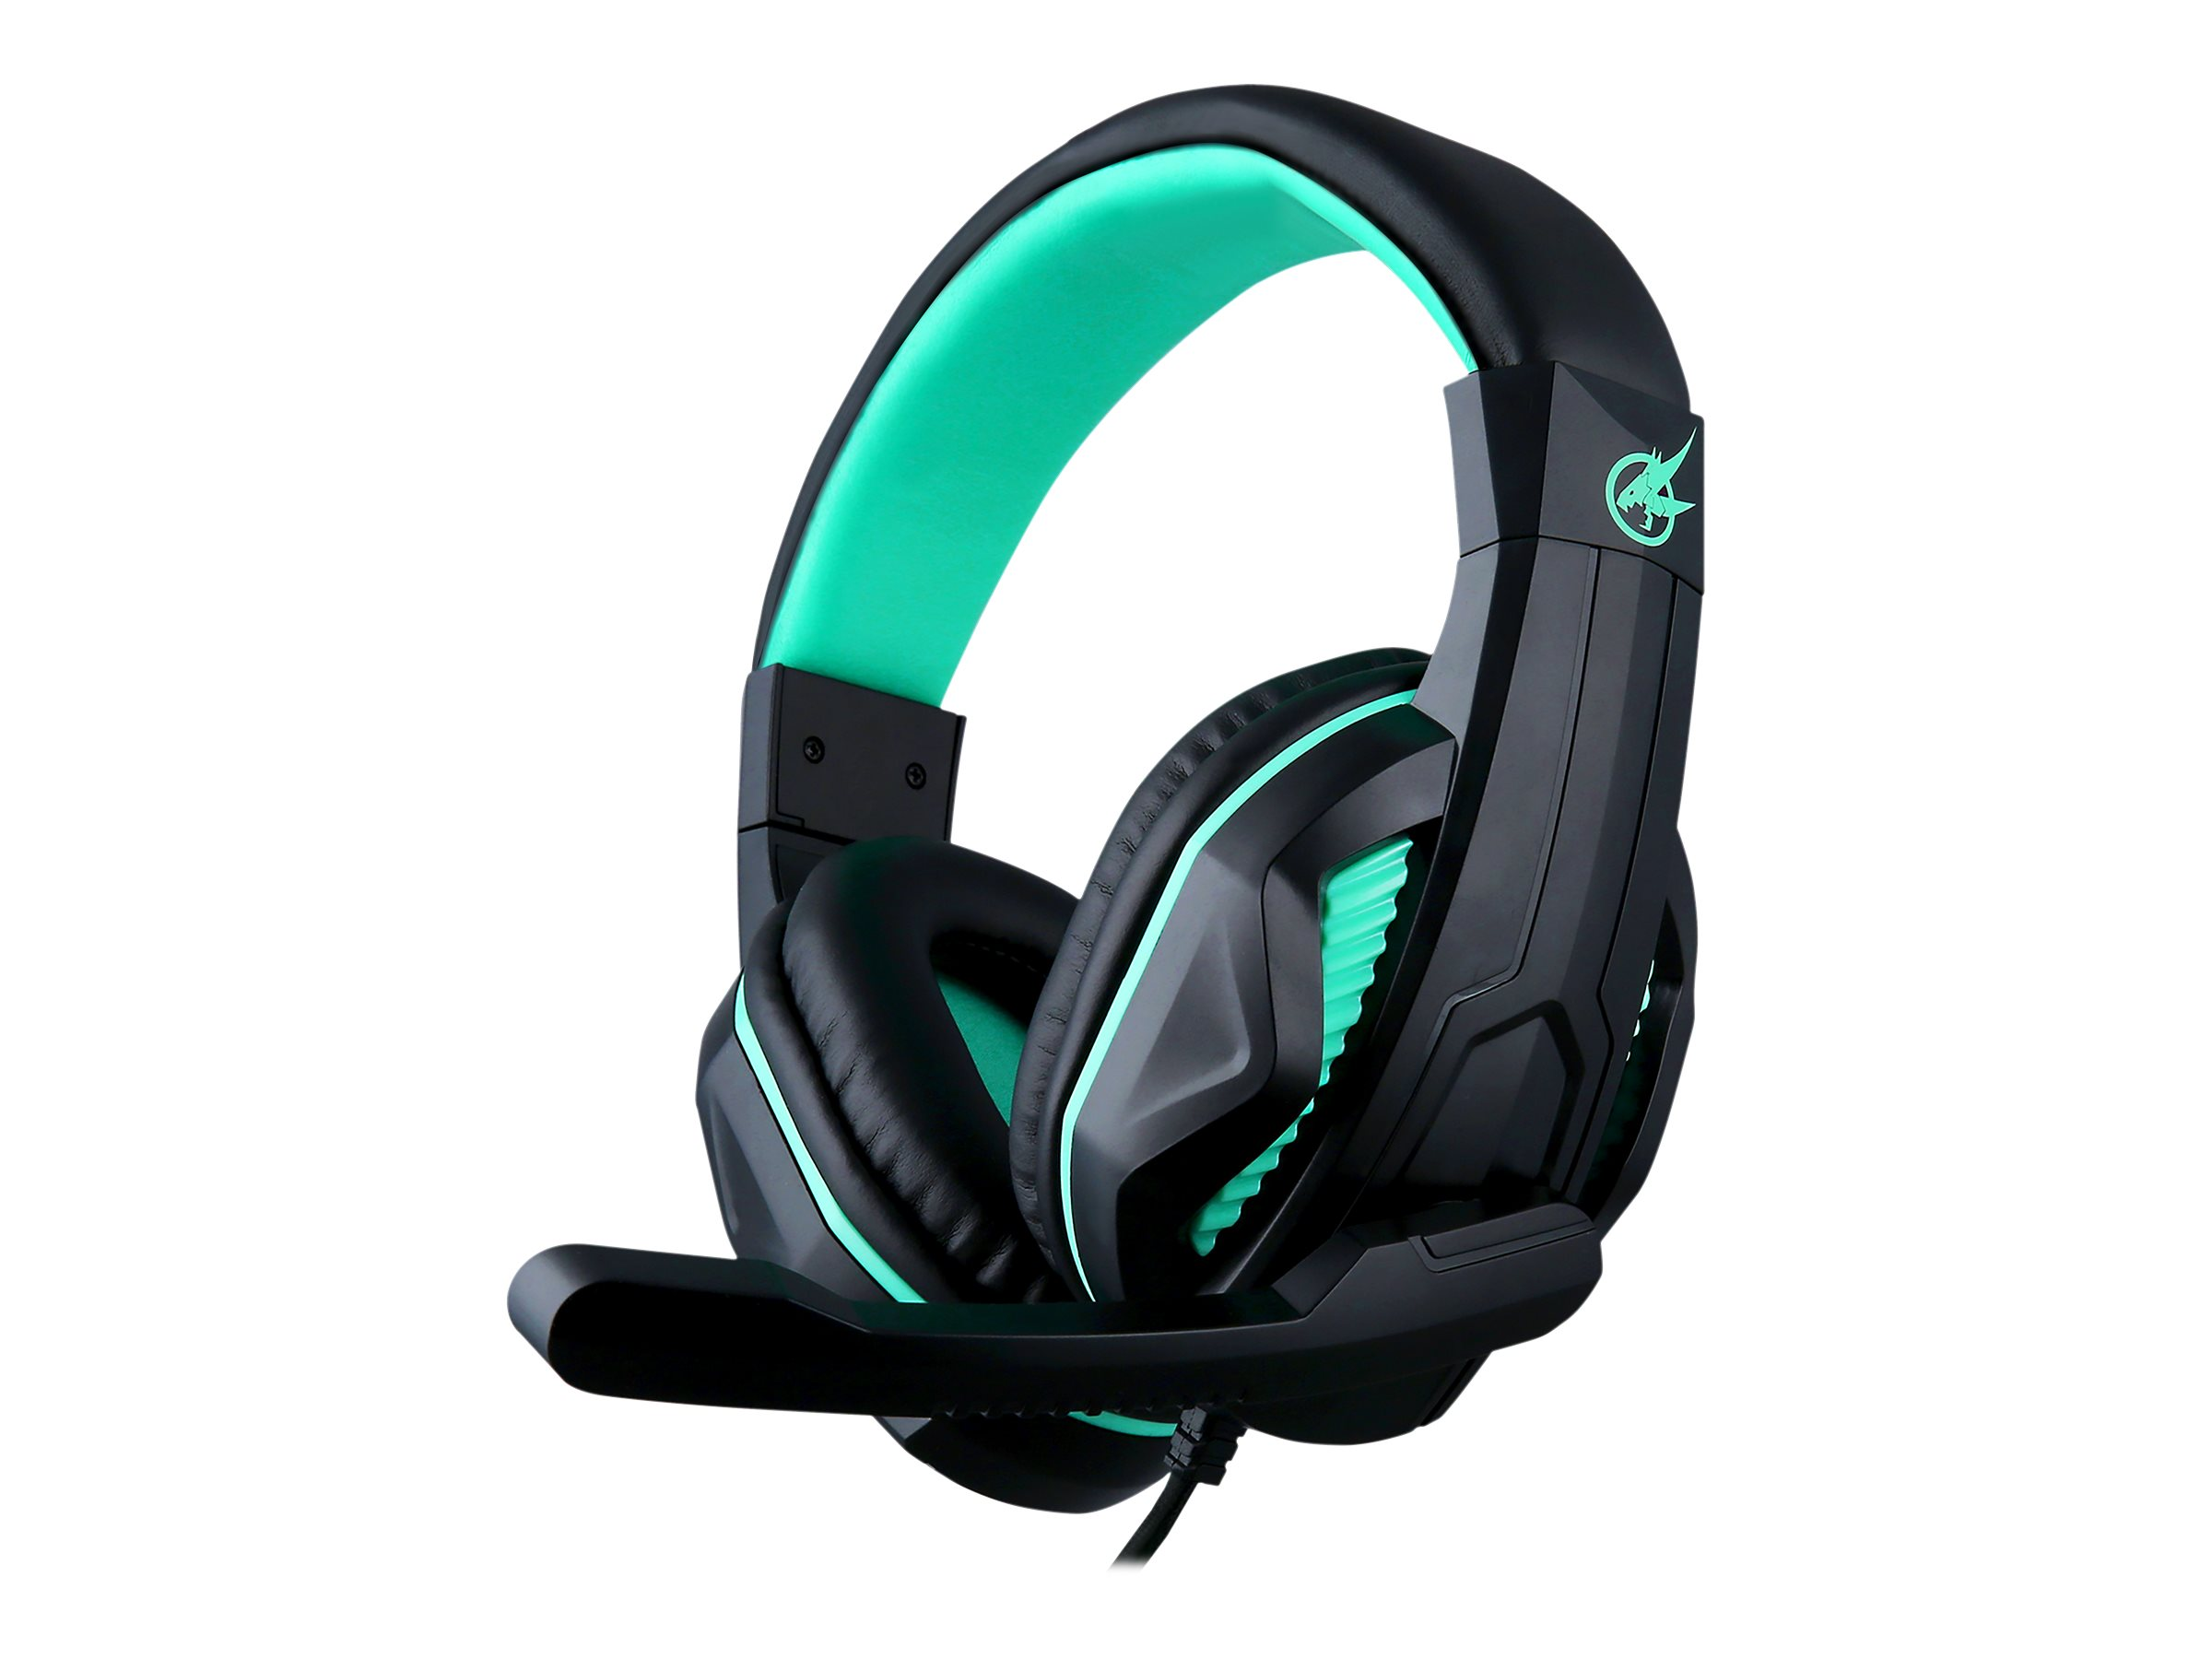 arokh casque gaming h1 avec double jack casques filaires. Black Bedroom Furniture Sets. Home Design Ideas